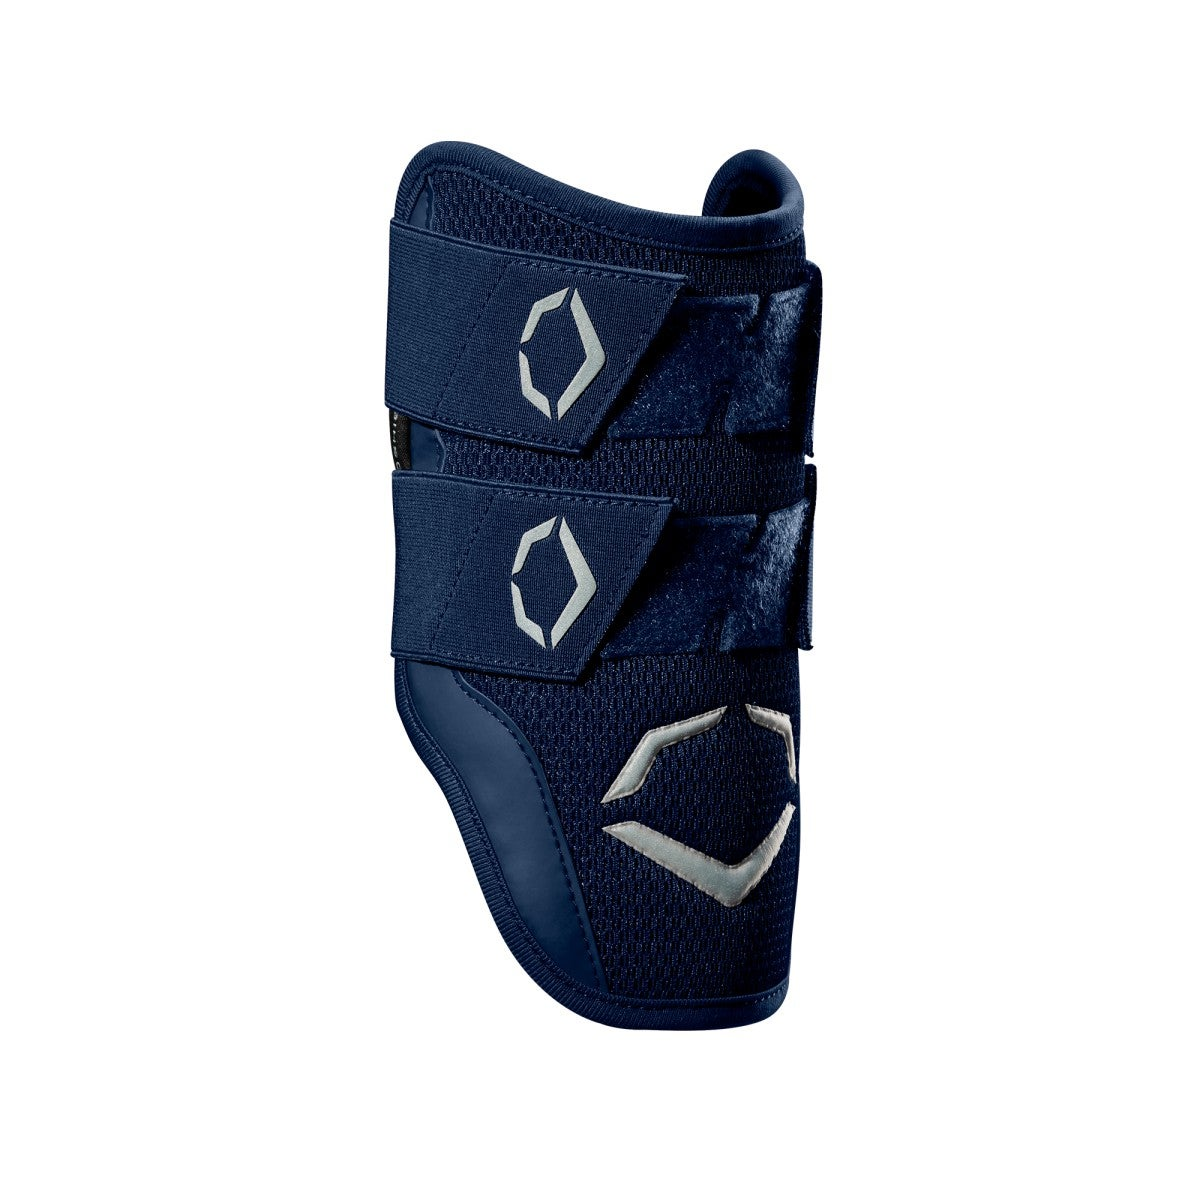 PRO-SRZ Batter's Double Strap Elbow Guard